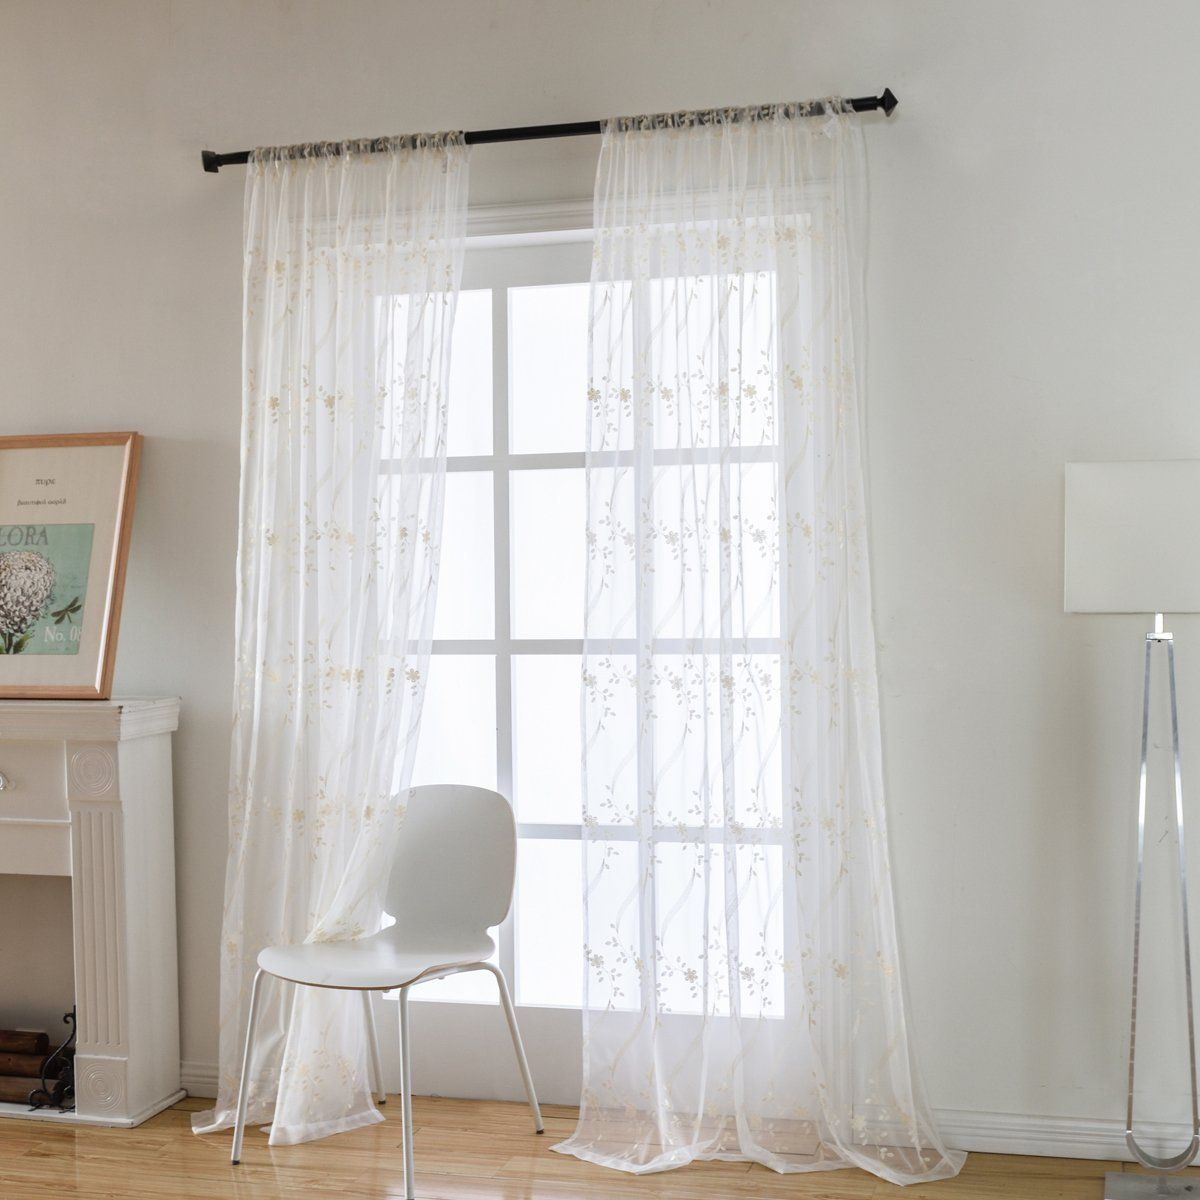 Wave Pattern Floral Embroidered Semi Sheer Curtains For Living Room Rod Pocket 63 Inch Length Beige Short Wi White Sheer Curtains Curtains Living Room Curtains